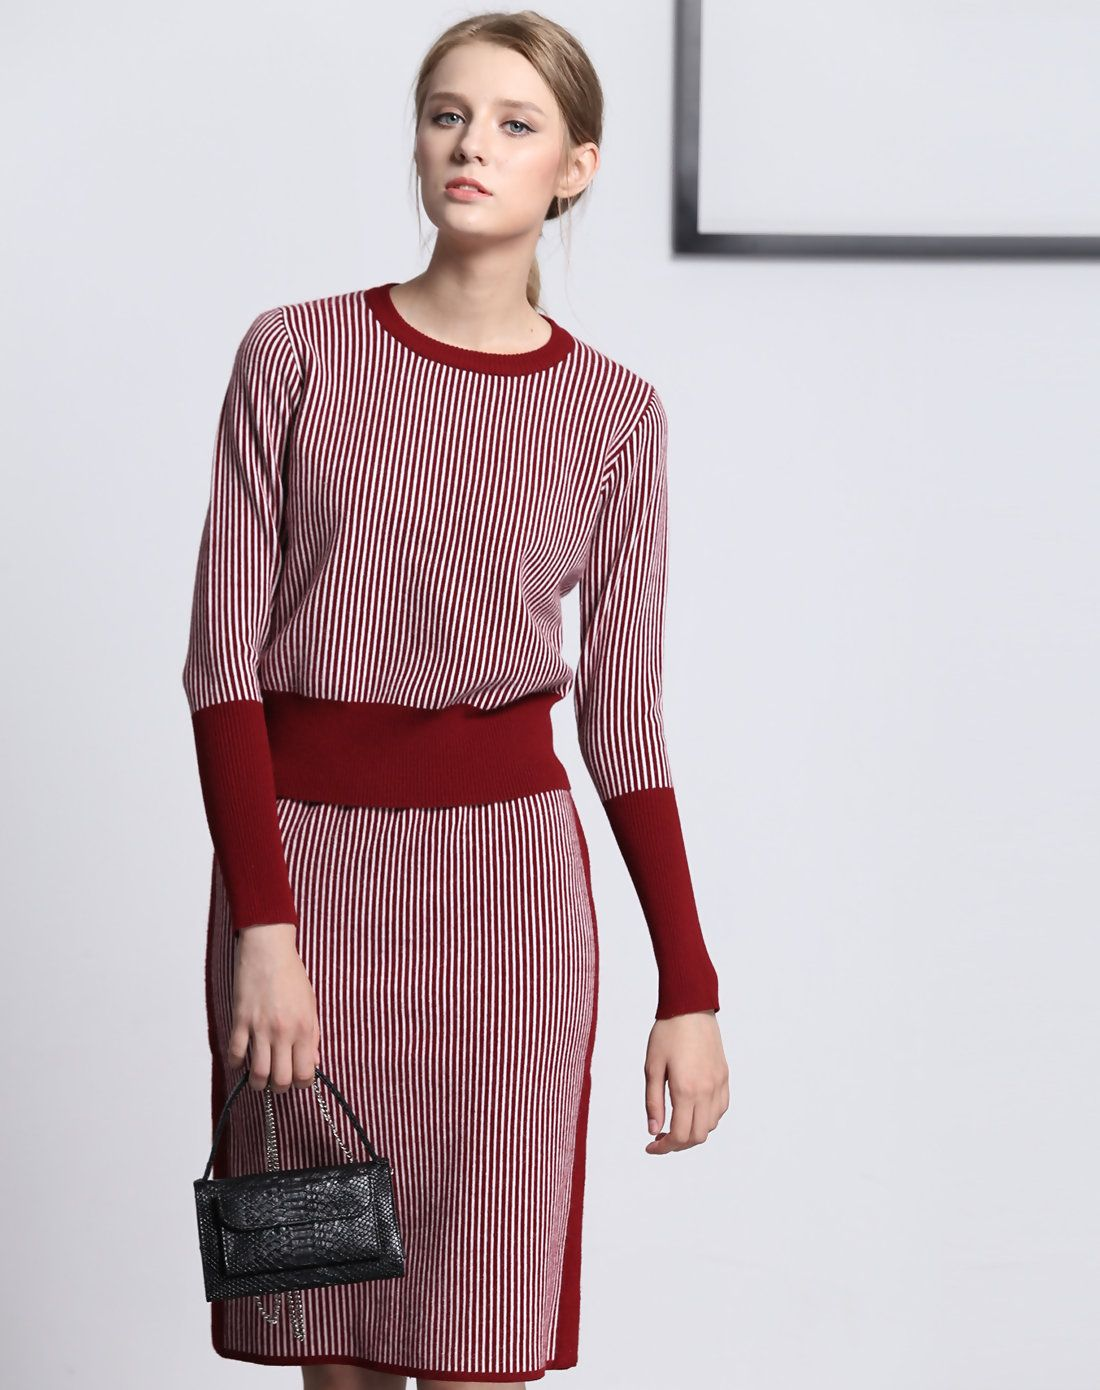 07c5d525cc3b  AdoreWe  VIPme Co-Ords - Fantiow Red Long Sleeve Sleeve   Matched Midi